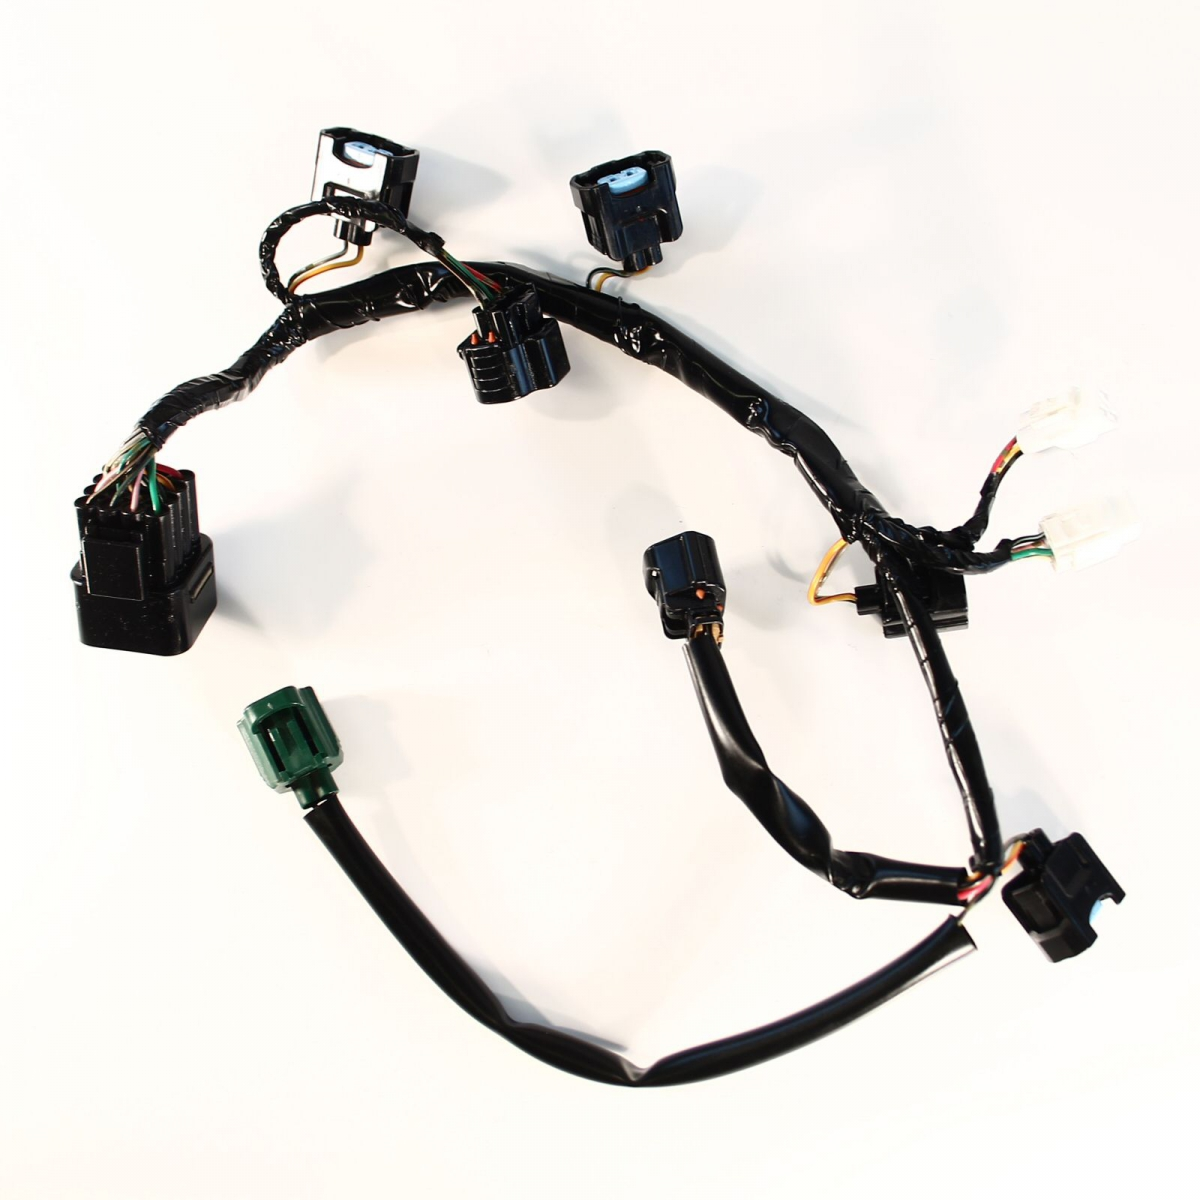 hight resolution of wiring harness for 1999 gsxr 750 srad 1999 gsxr 750 value 2005 gsxr 750 wiring diagram 2004 gsxr 750 wiring diagram